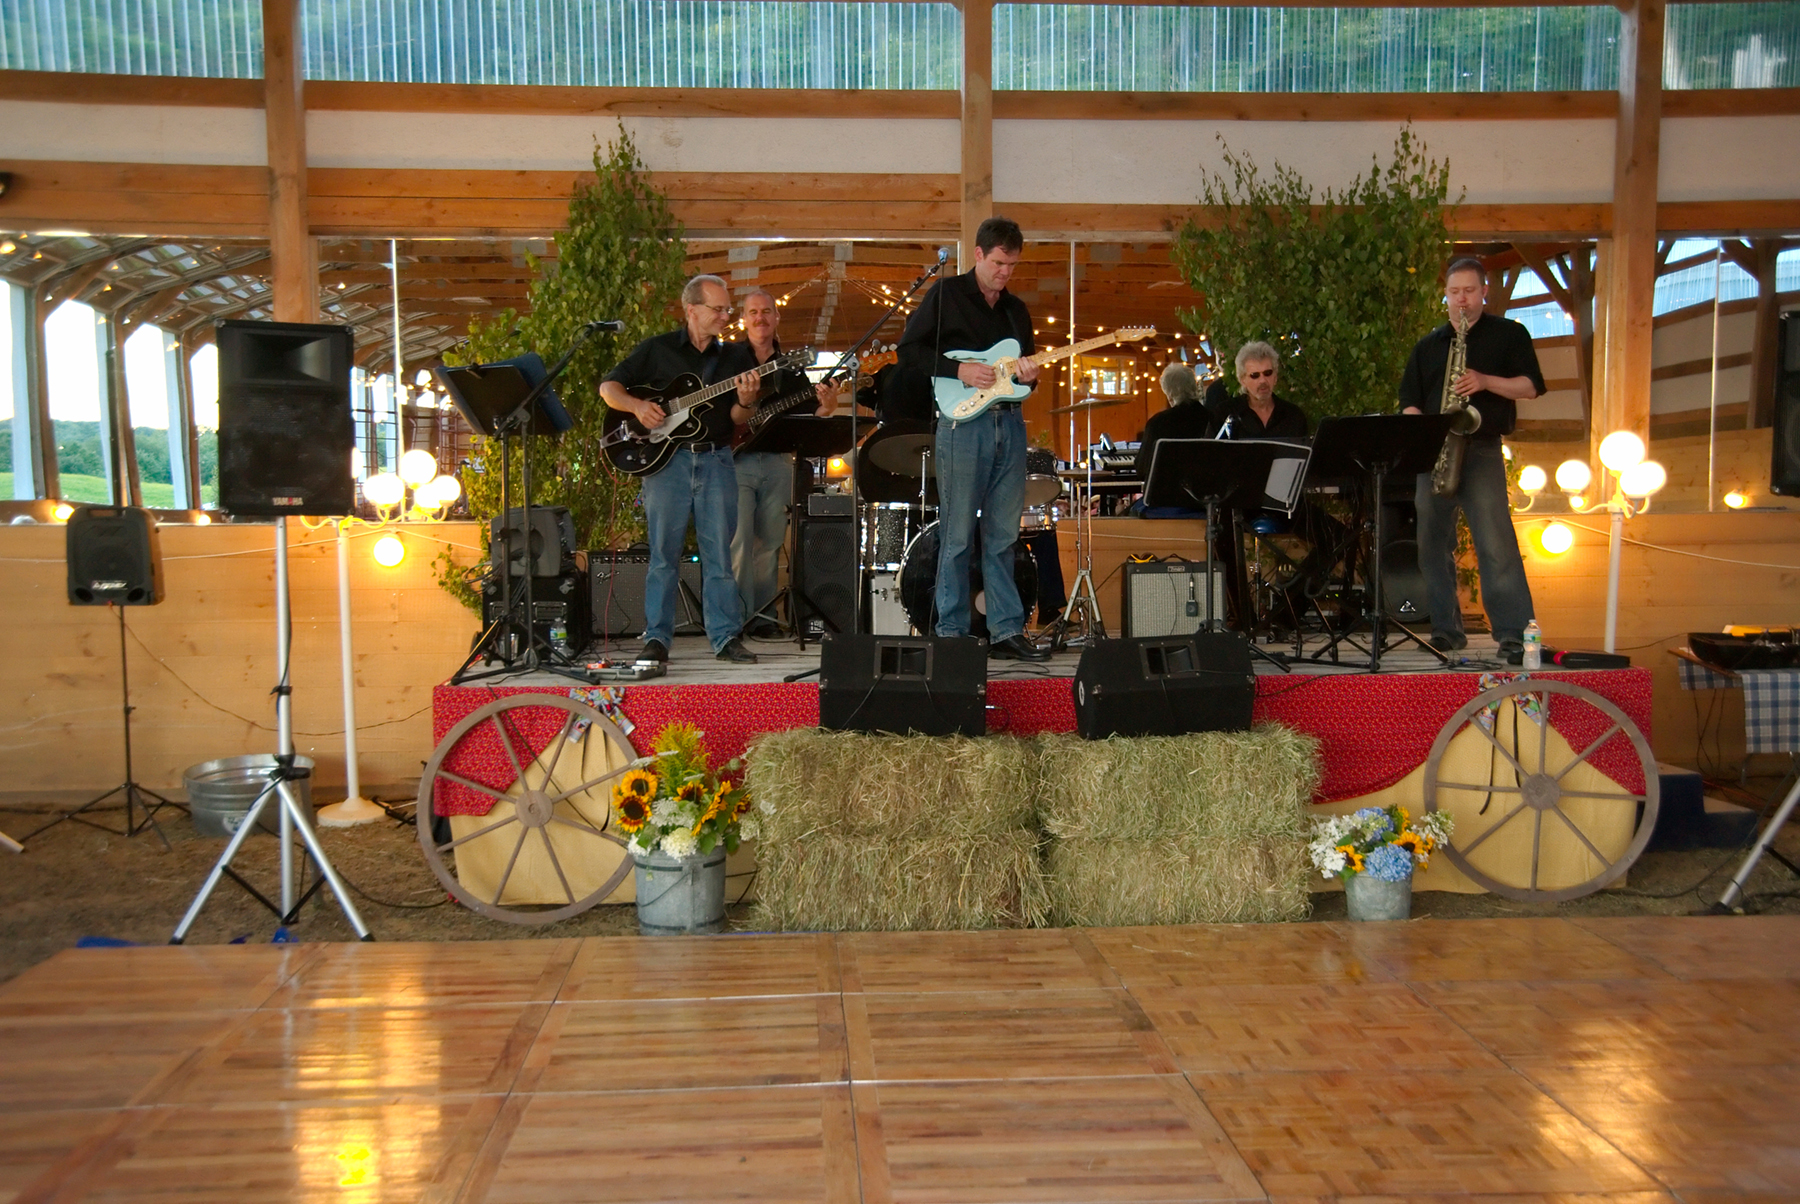 band playing on a stage